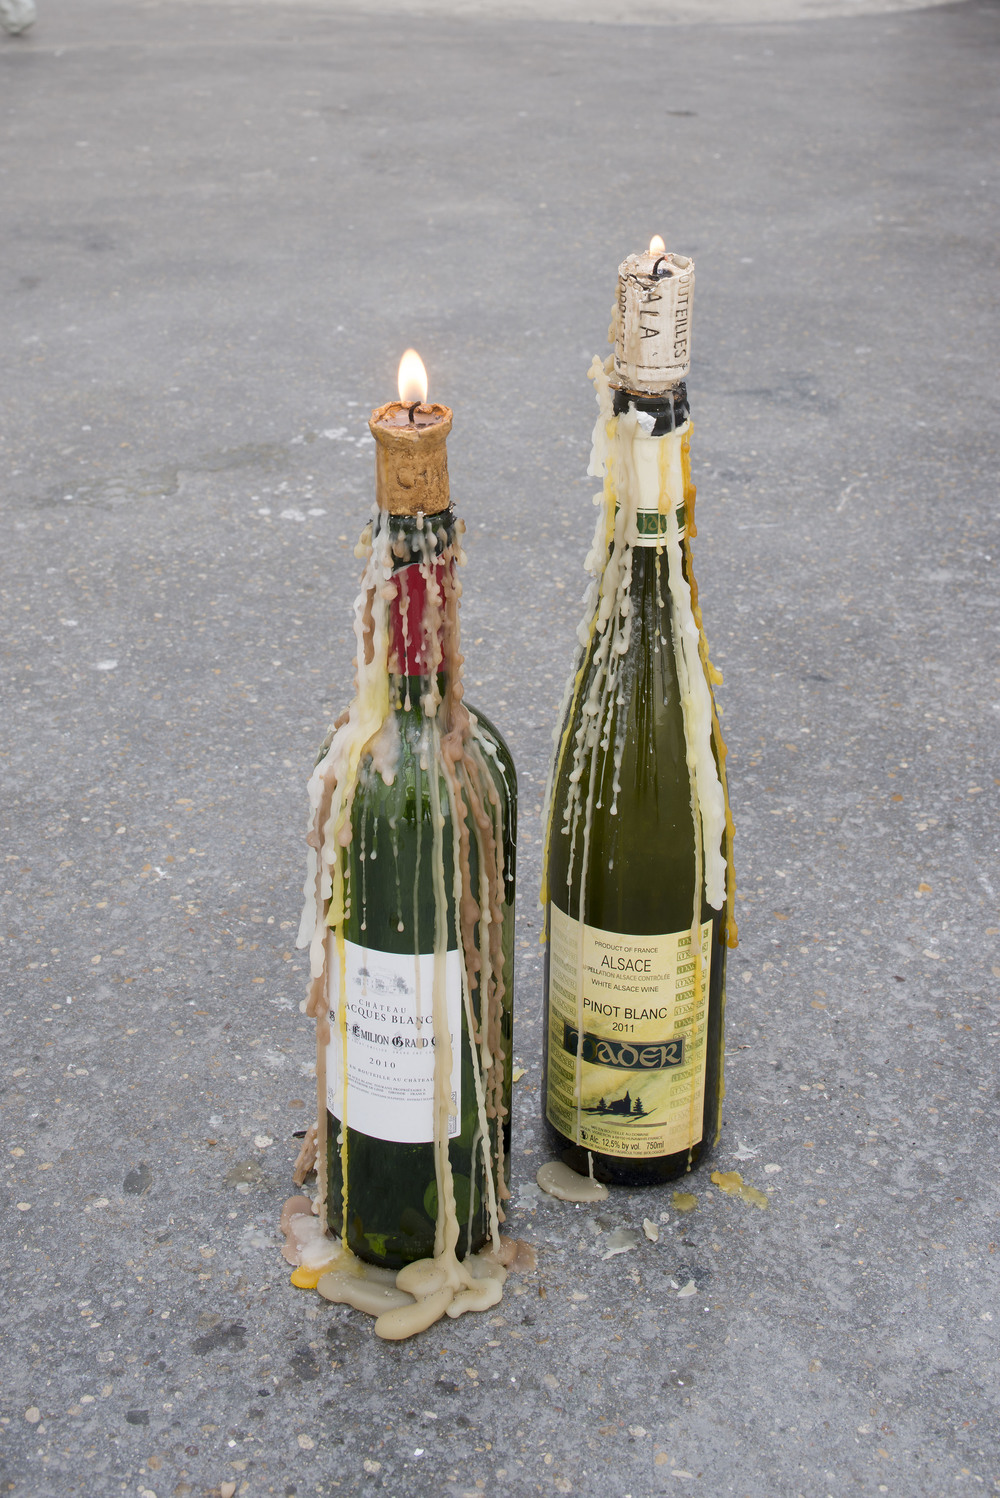 Just The Two of Us 2014 Wine cork candles, wine bottles Dimensions vary with installation